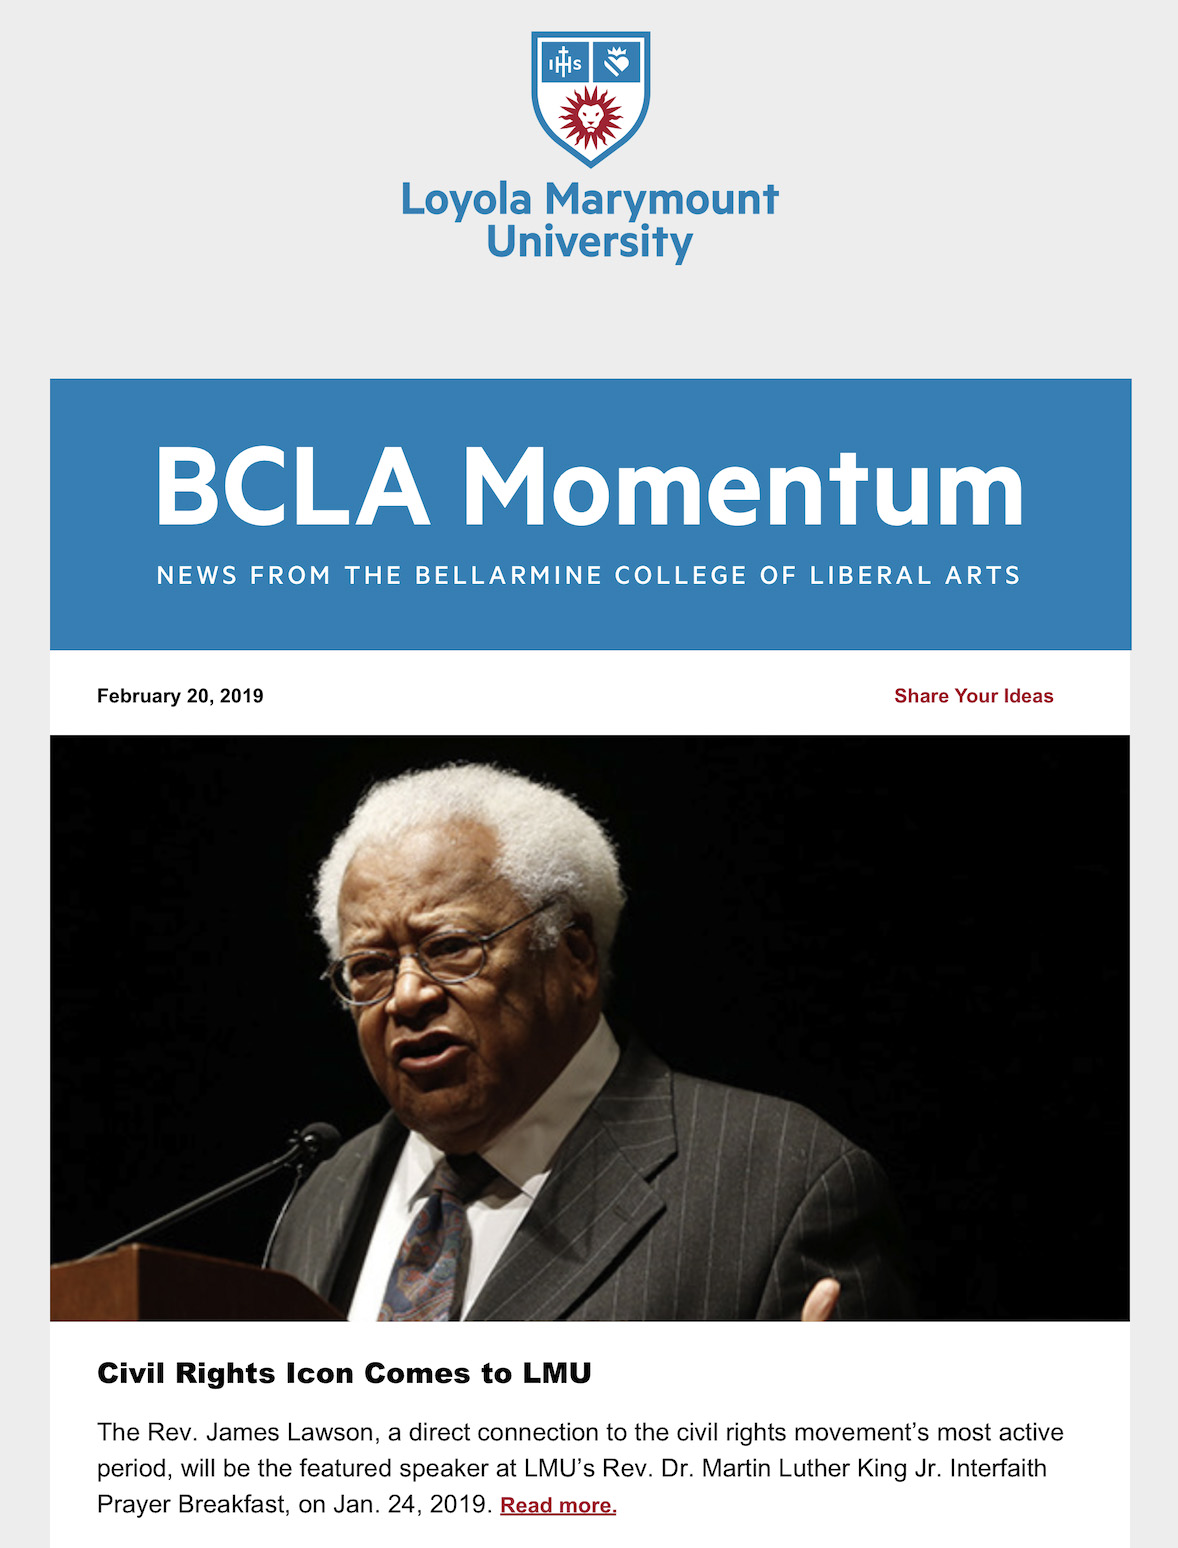 BCLA Momentum newsletter feature